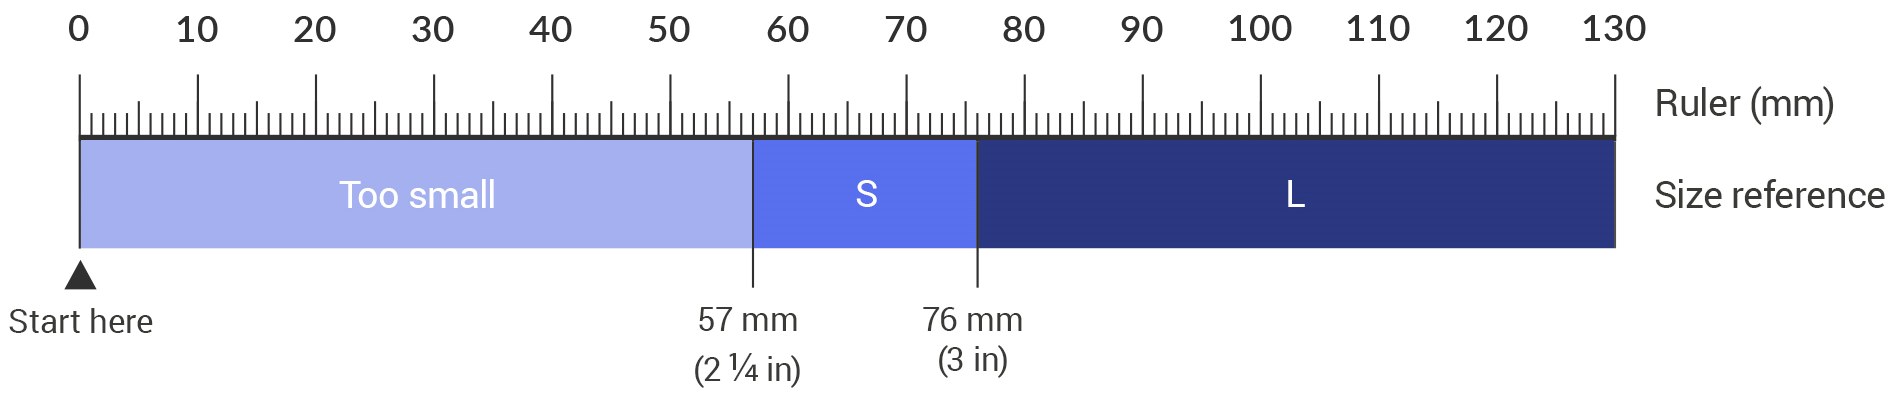 c96964f41e You may also print this ruler to measure your hands width. Place the end of